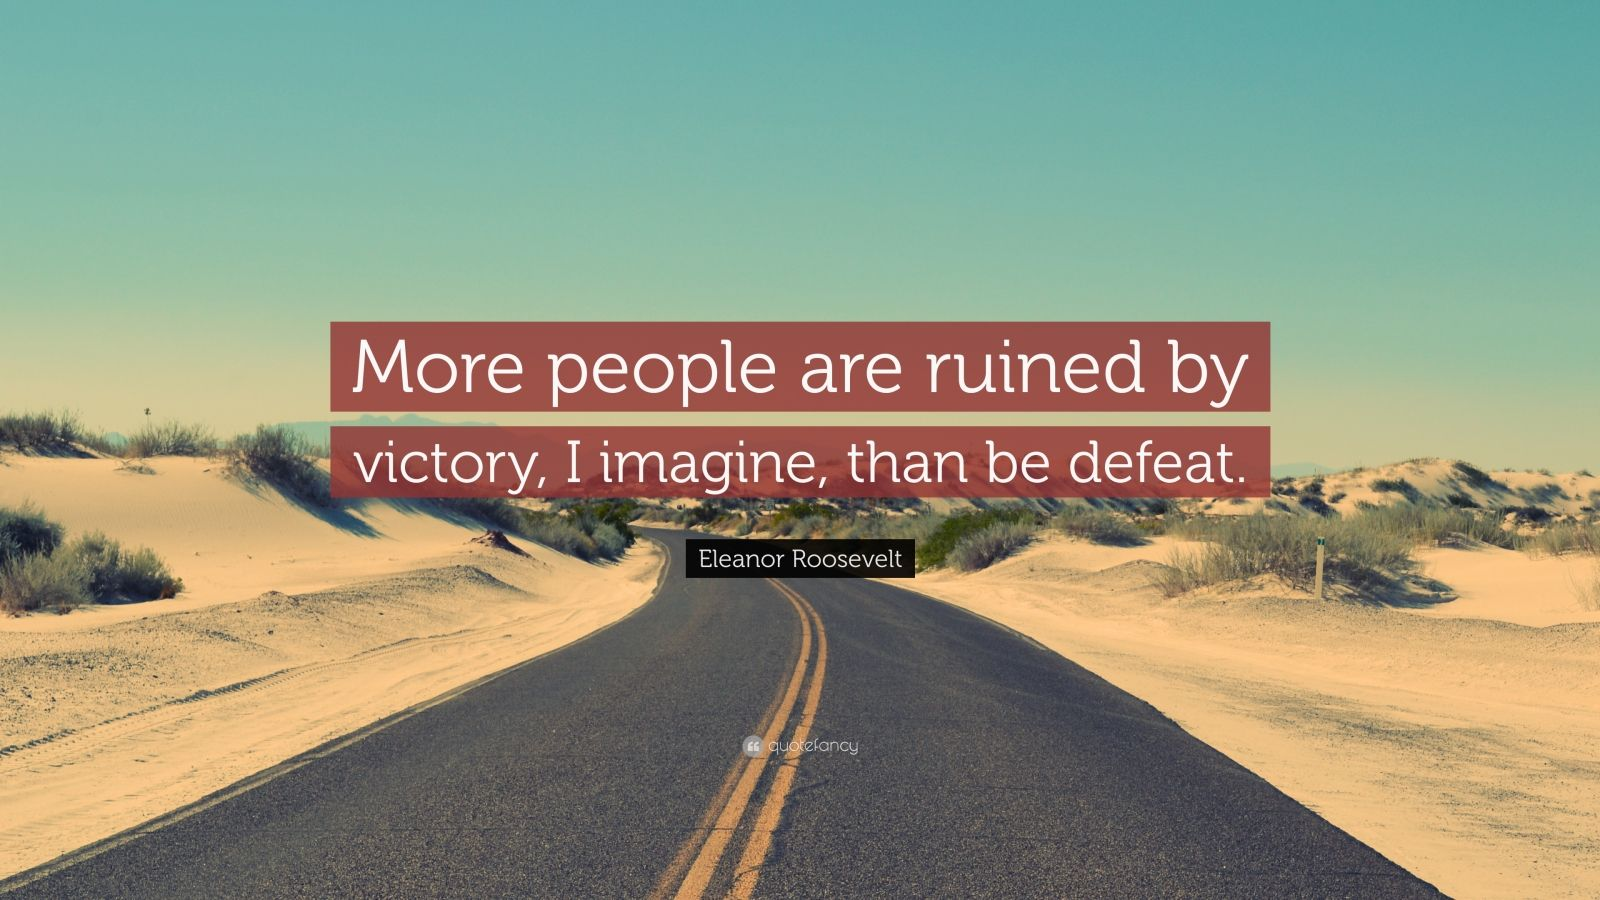 """Eleanor Roosevelt Quote: """"More people are ruined by victory, I imagine, than be defeat."""""""